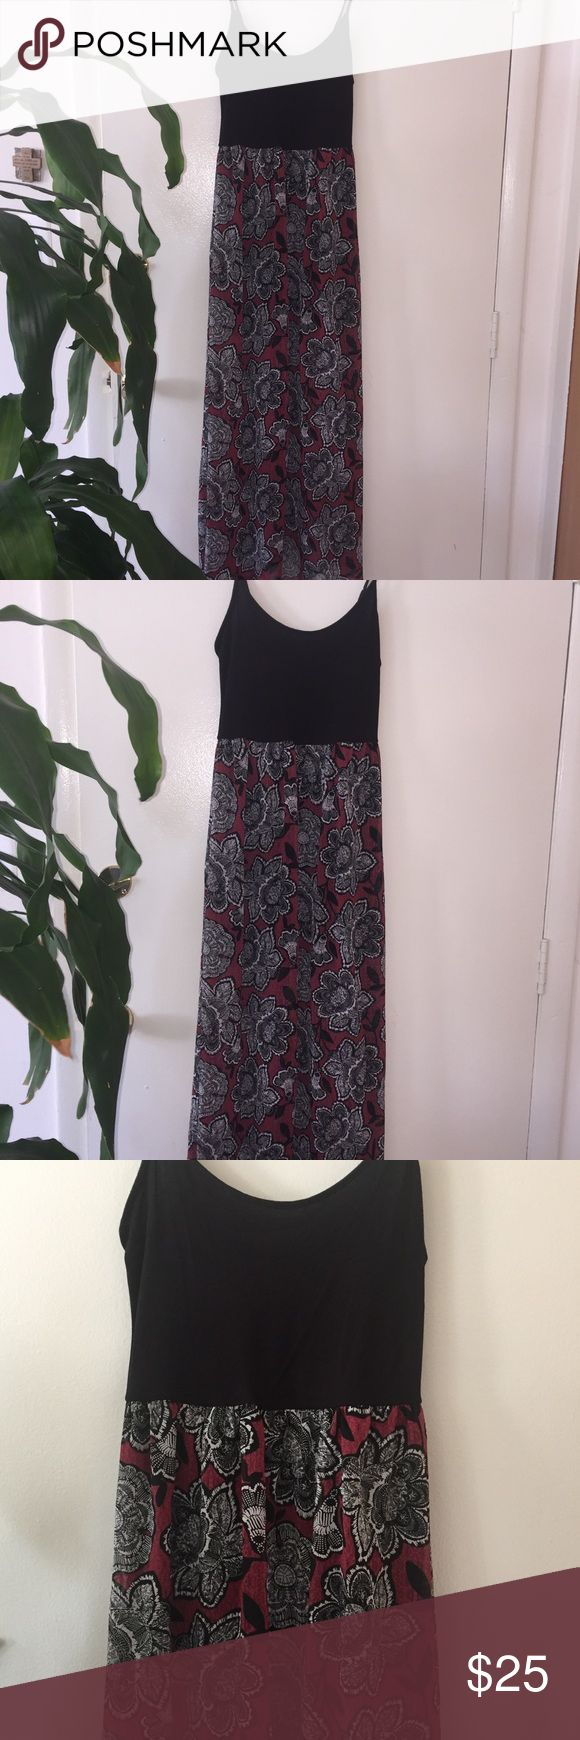 """Forever 21, Floral Maxi Dress Worn once. Off the rack, perfect condition. Size Large but the top black fabric is stretchy so could fit a larger woman. Floral gown has a black slip underneath that goes to my knees (I'm 5'3""""). Bust: 16"""", Length: 59.5"""" Goes great for summer festivals or for special occasions. It's really pretty! and versatile. Pair with a jean jacket for a bohemian, fall look. ~~make me an offer, let's work something out ~~bundle for added discount :)) Forever 21 Dresses Maxi"""